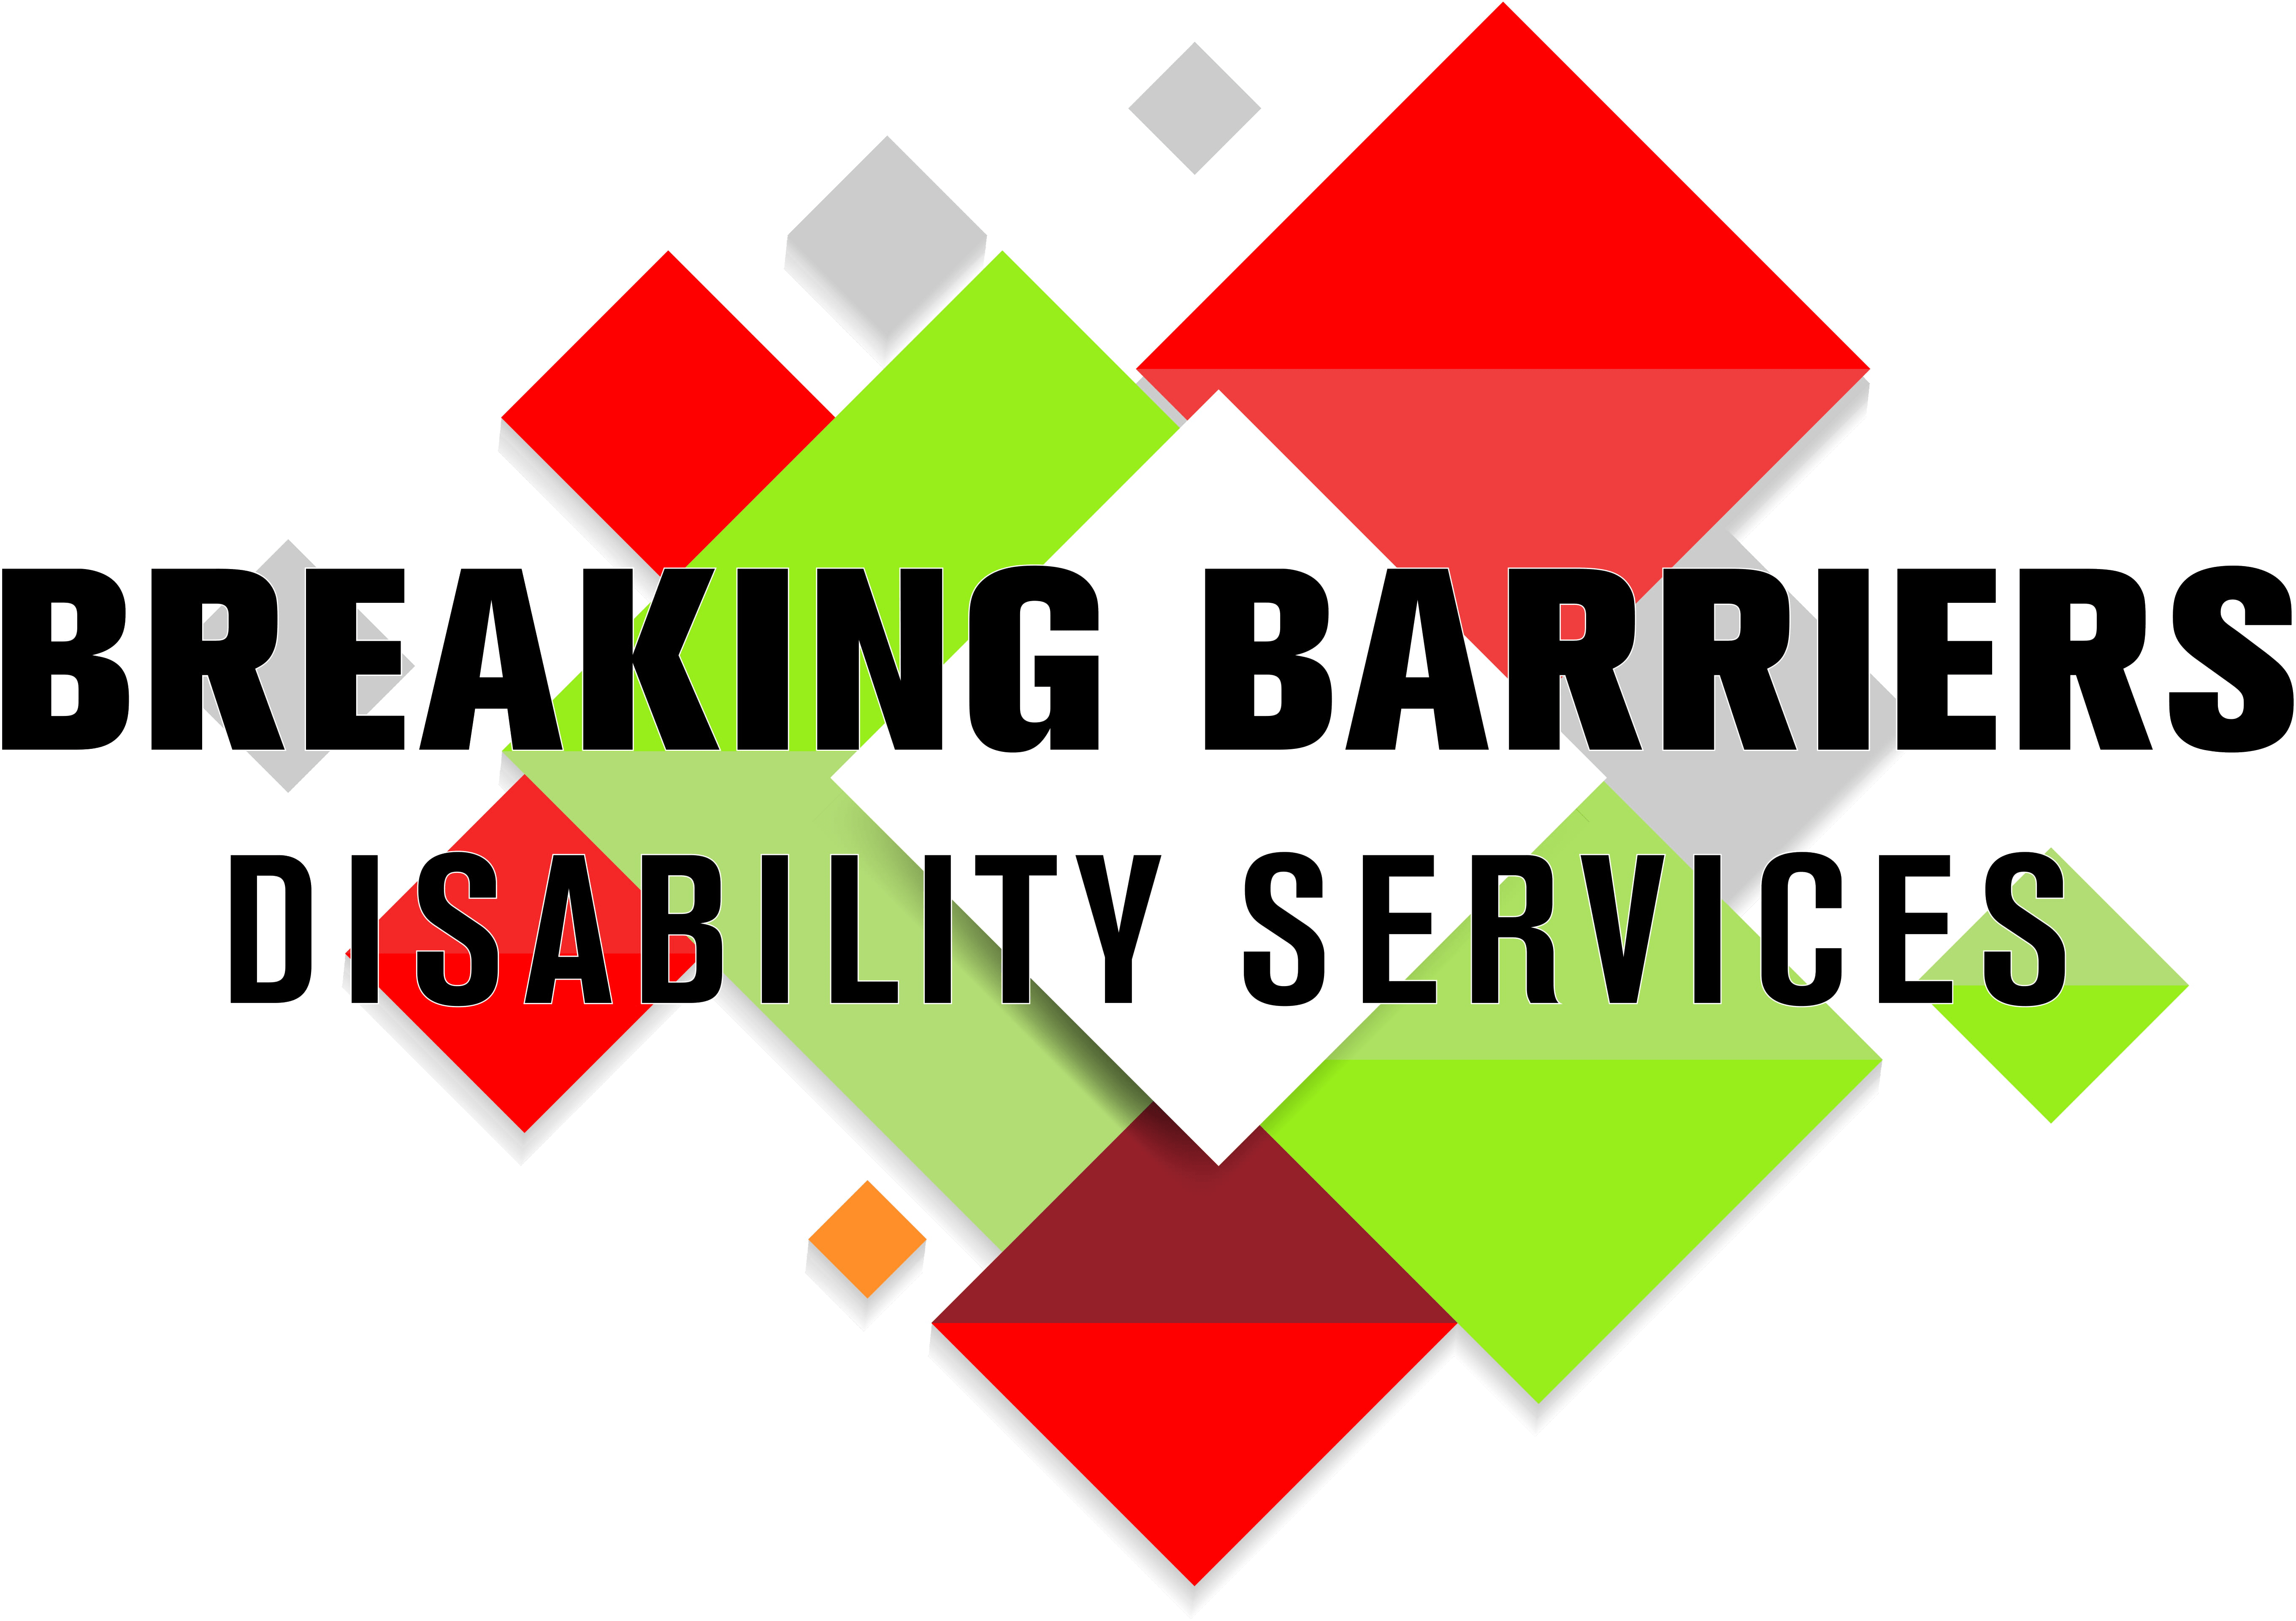 Breaking Barriers Disability Services